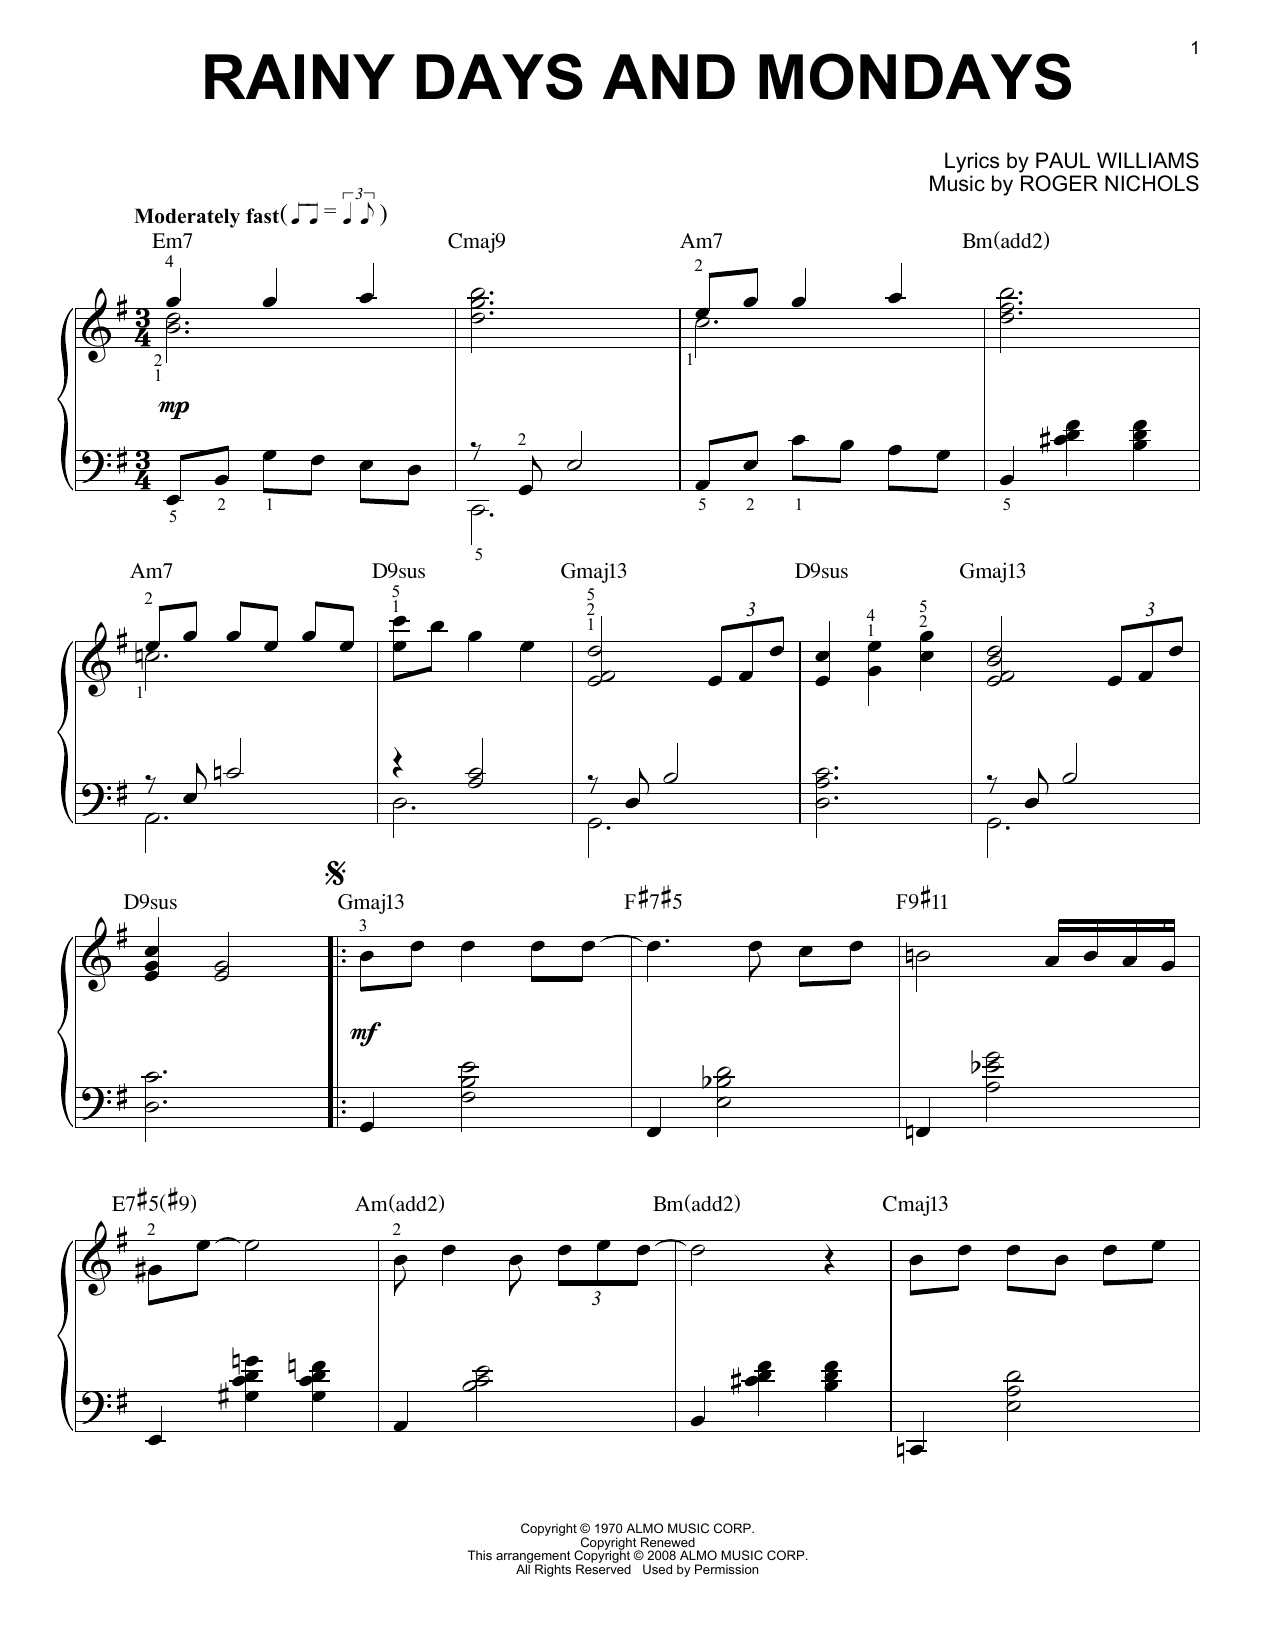 Carpenters Rainy Days And Mondays sheet music notes and chords